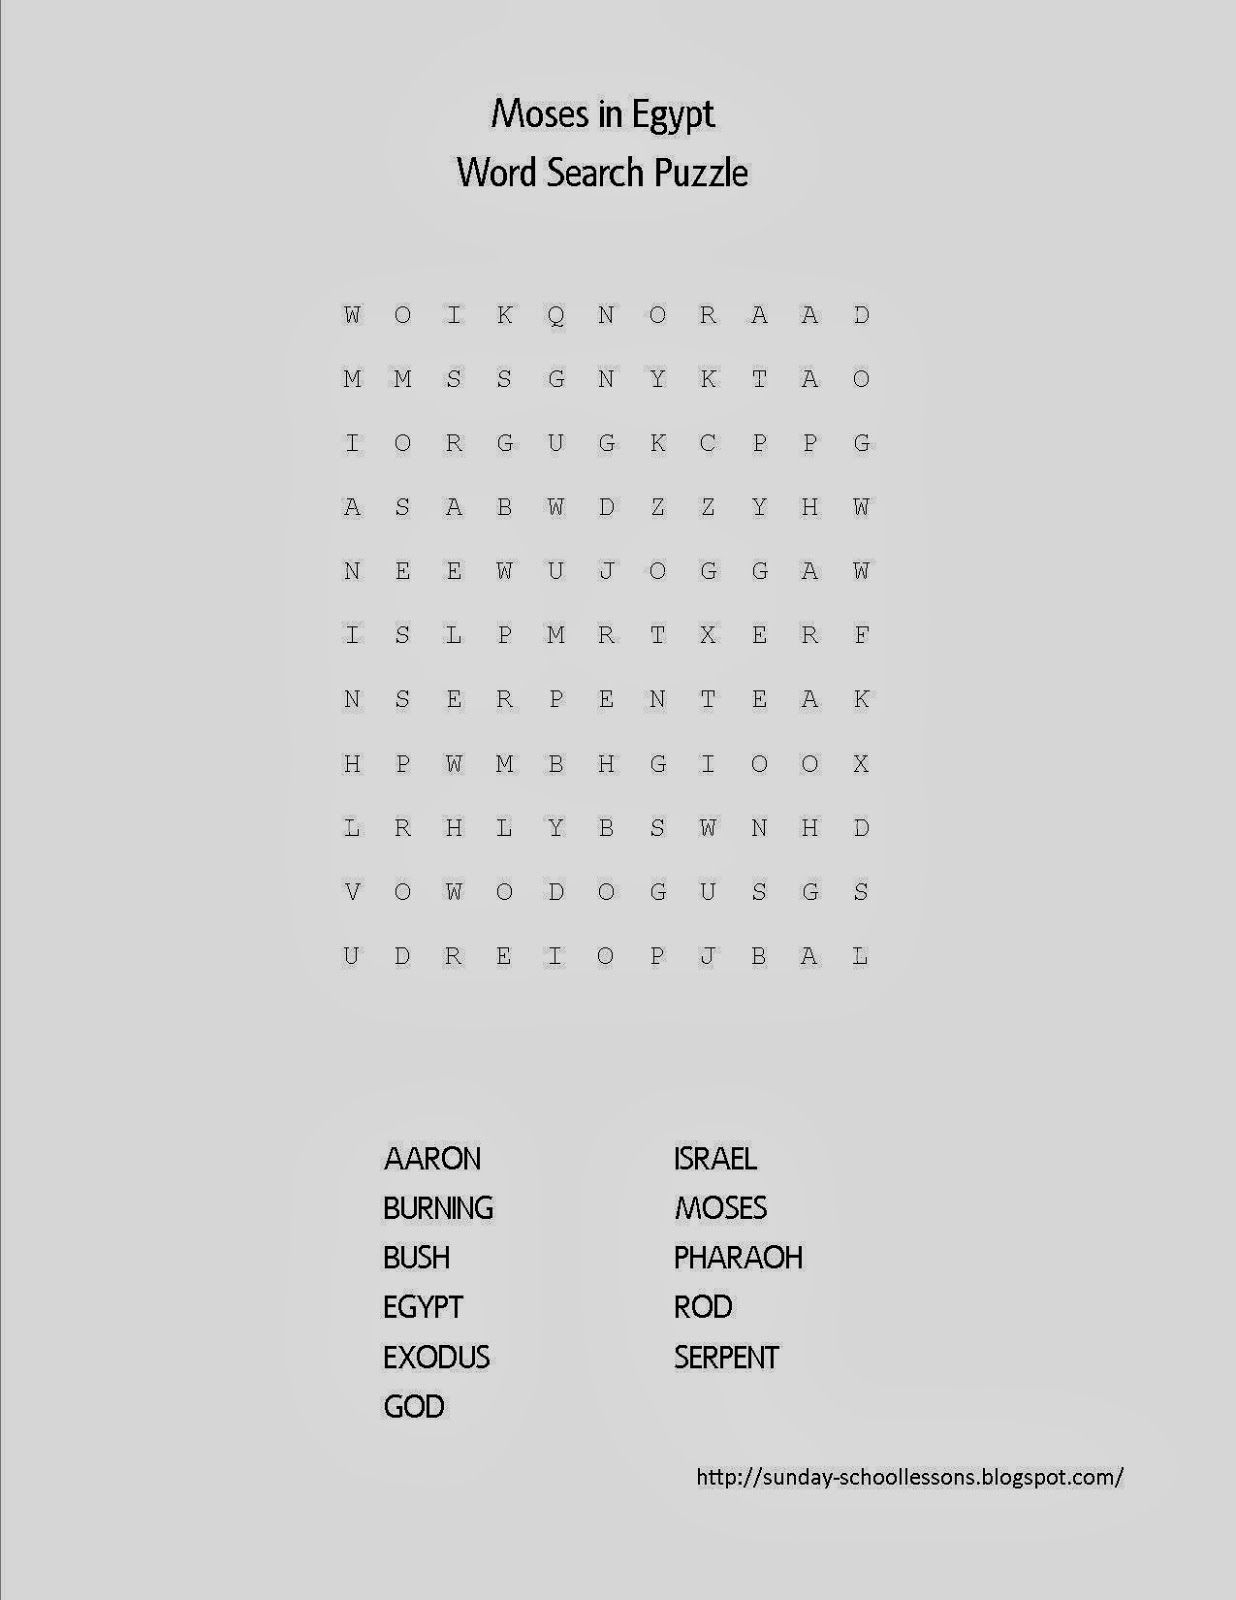 Moses In Egypt Word Search Puzzle - Free Sunday School Activities - Printable Puzzles On Moses